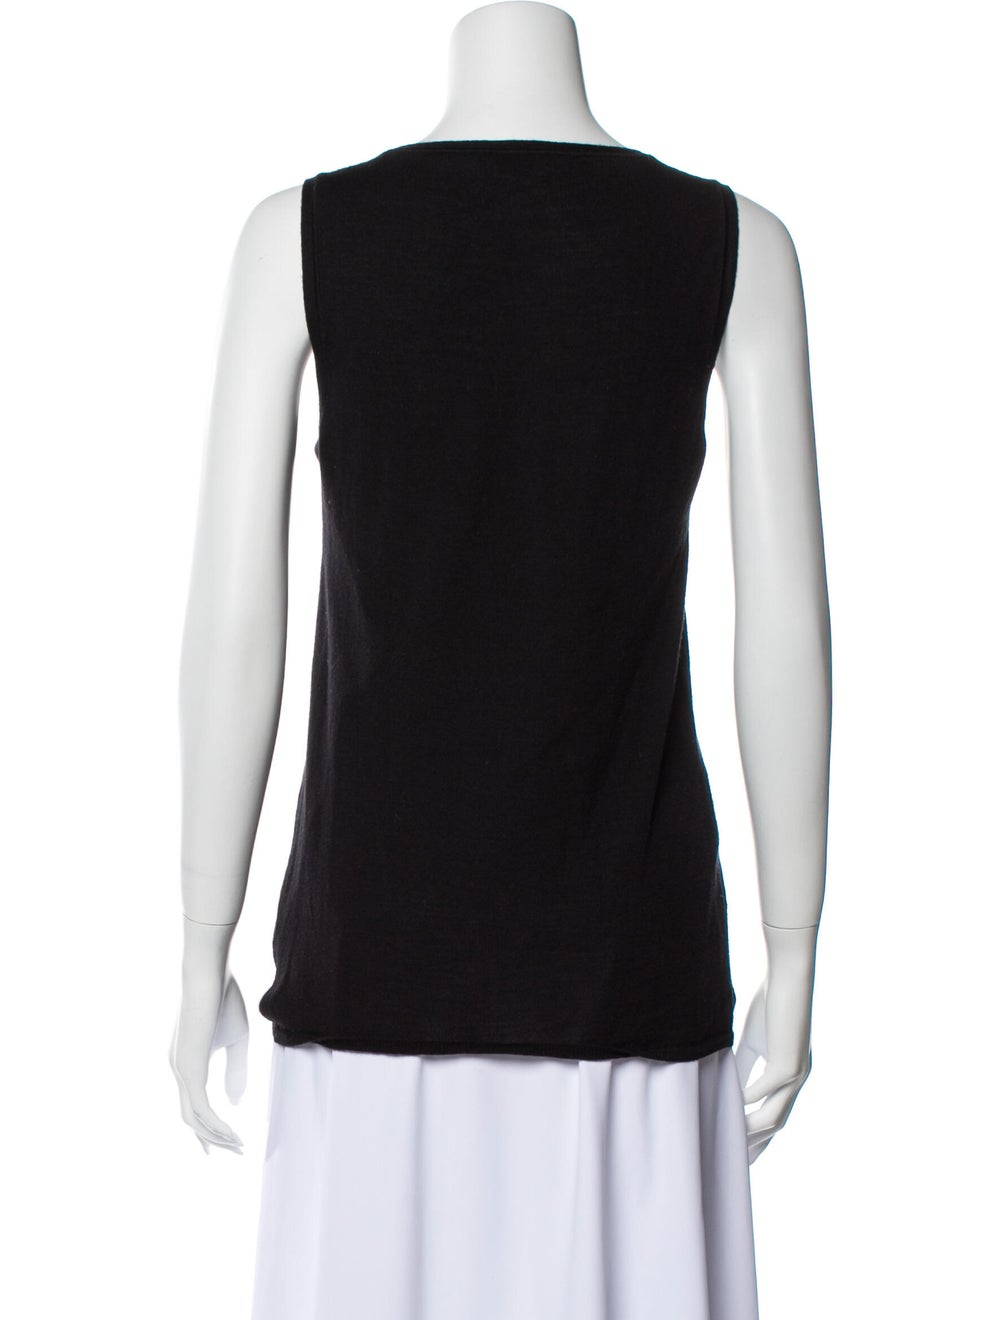 Prada V-Neck Sleeveless Top Black - image 3